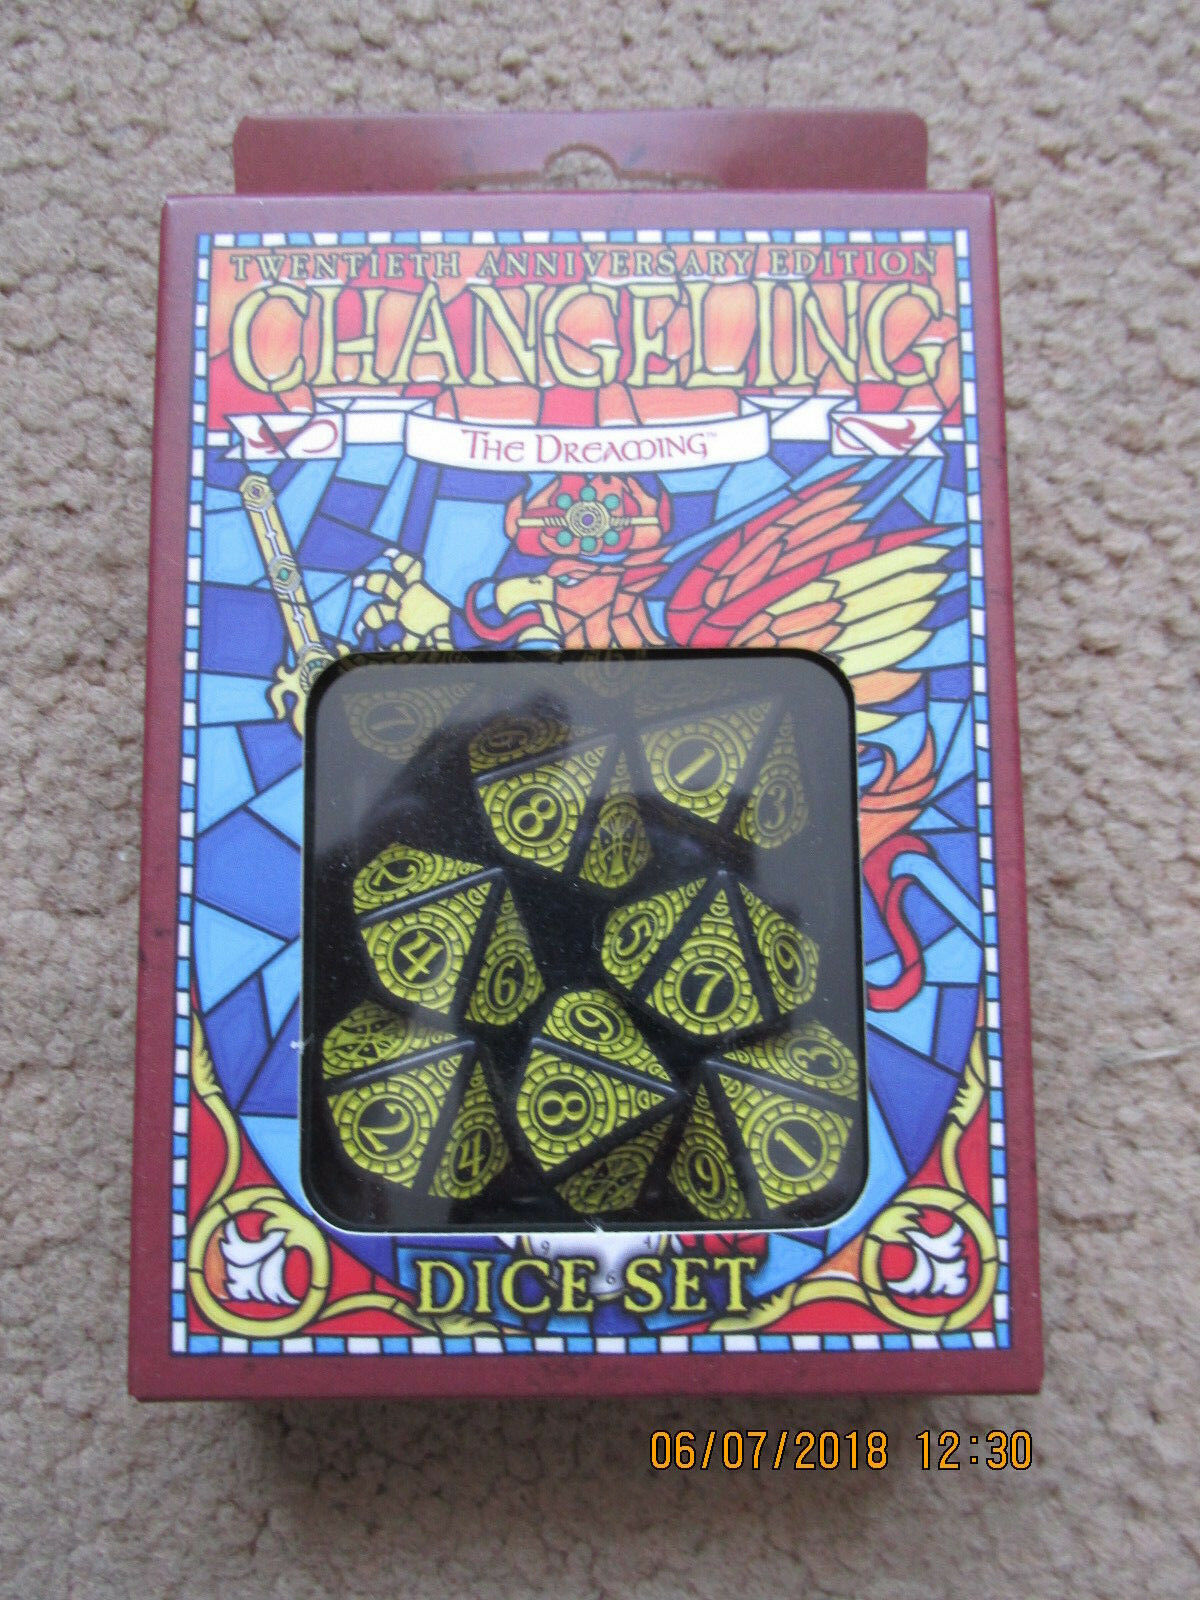 Changeling The Dreaming Dice Set 20th Ae 10d10 10 Workshop Games Table Amp For Sale Online Ebay Do you want to learn more about norse foundry kickstarter? changeling the dreaming xx 20th anniversary kickstarter new dice set 10d10 boxed